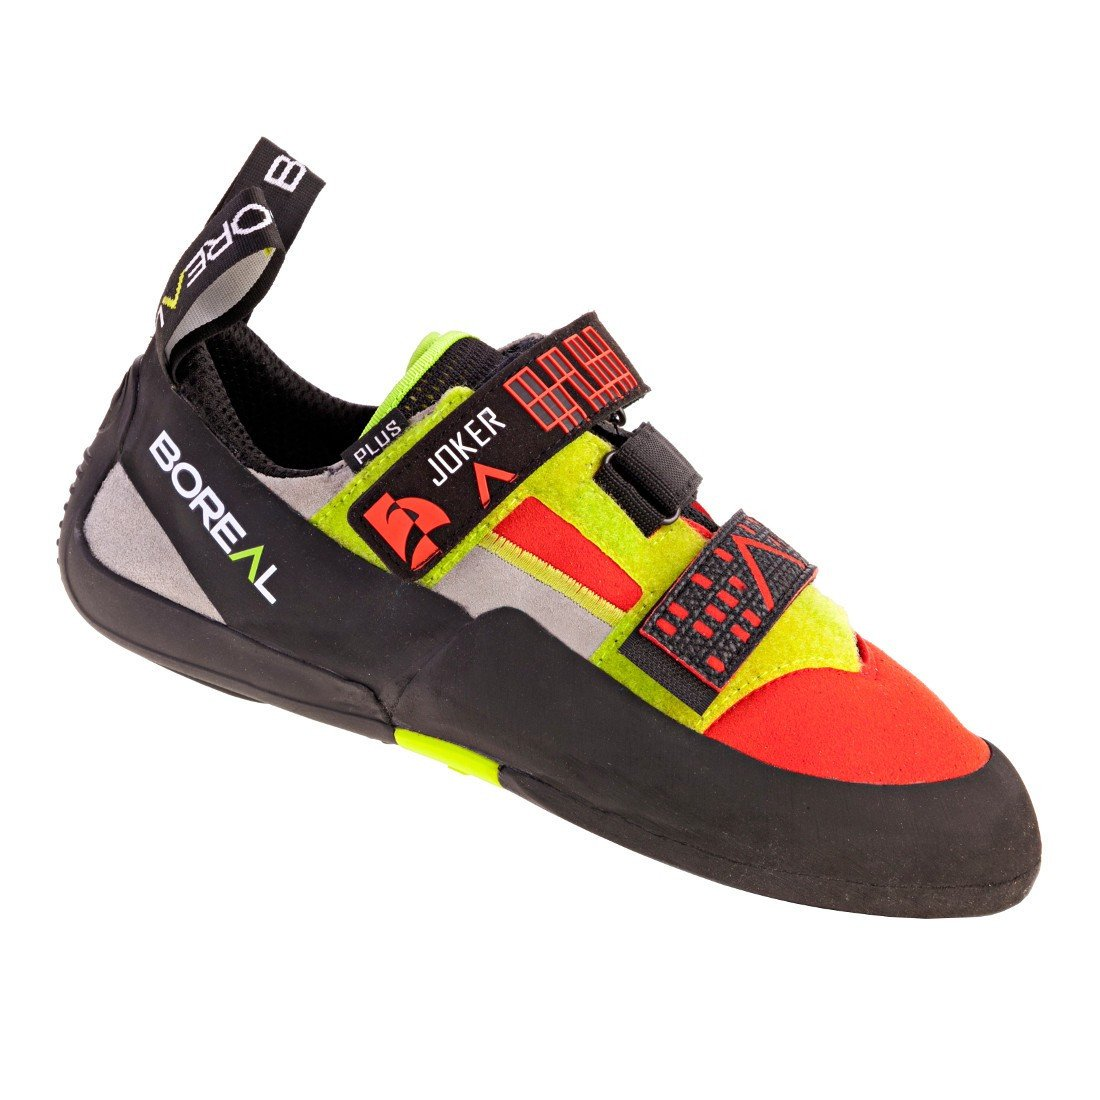 Boreal Joker Plus climbing shoe black, red and yellow